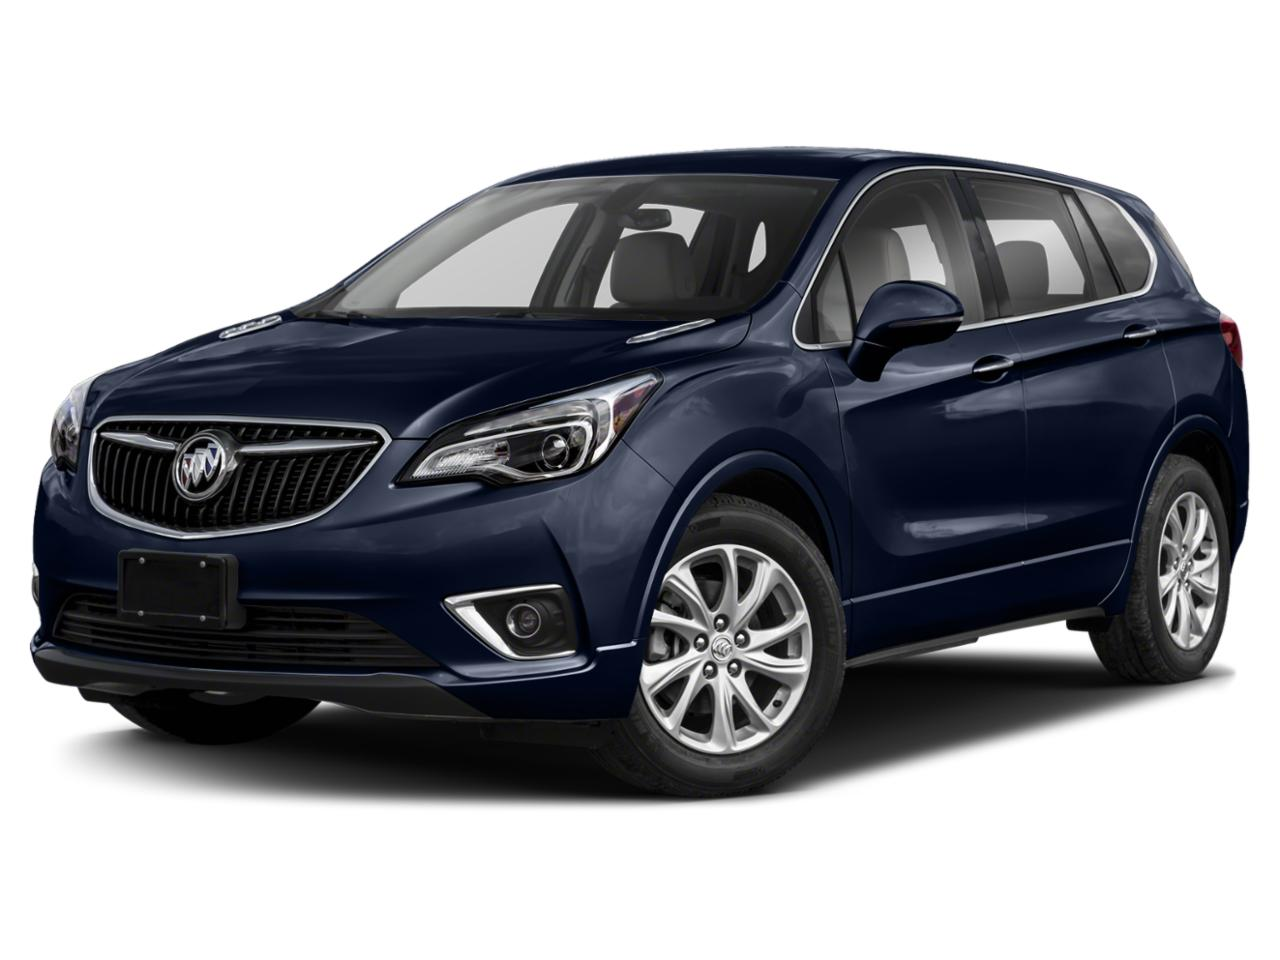 2020 Buick Envision Vehicle Photo in Safford, AZ 85546